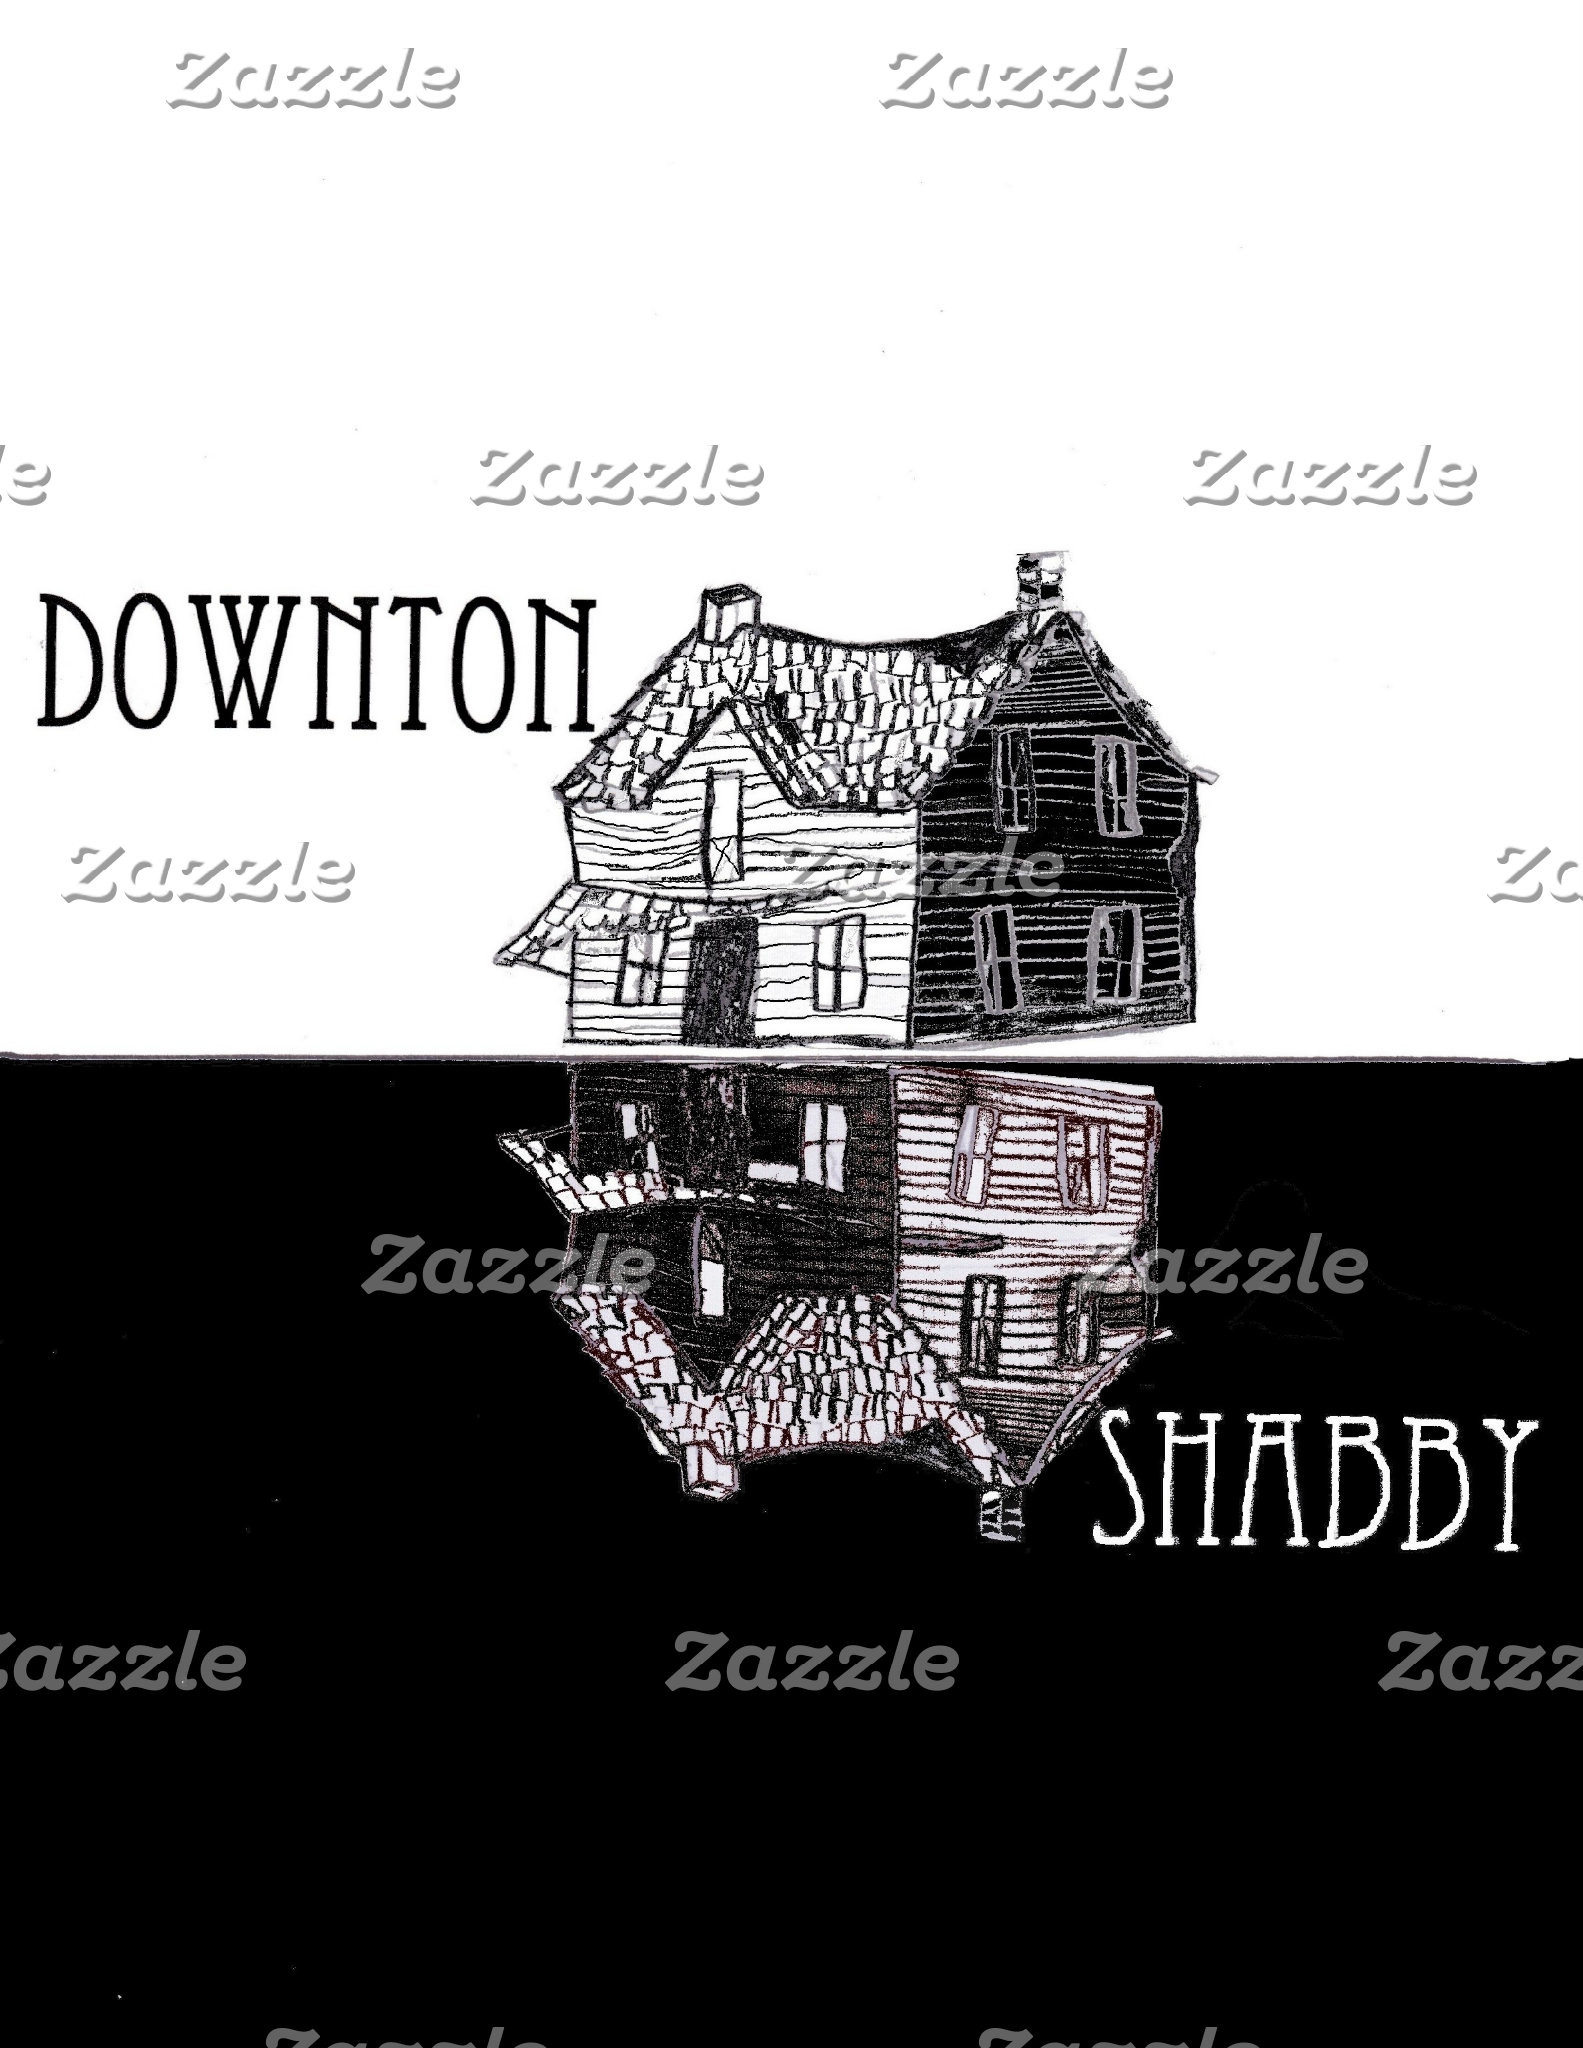 Downton Shabby